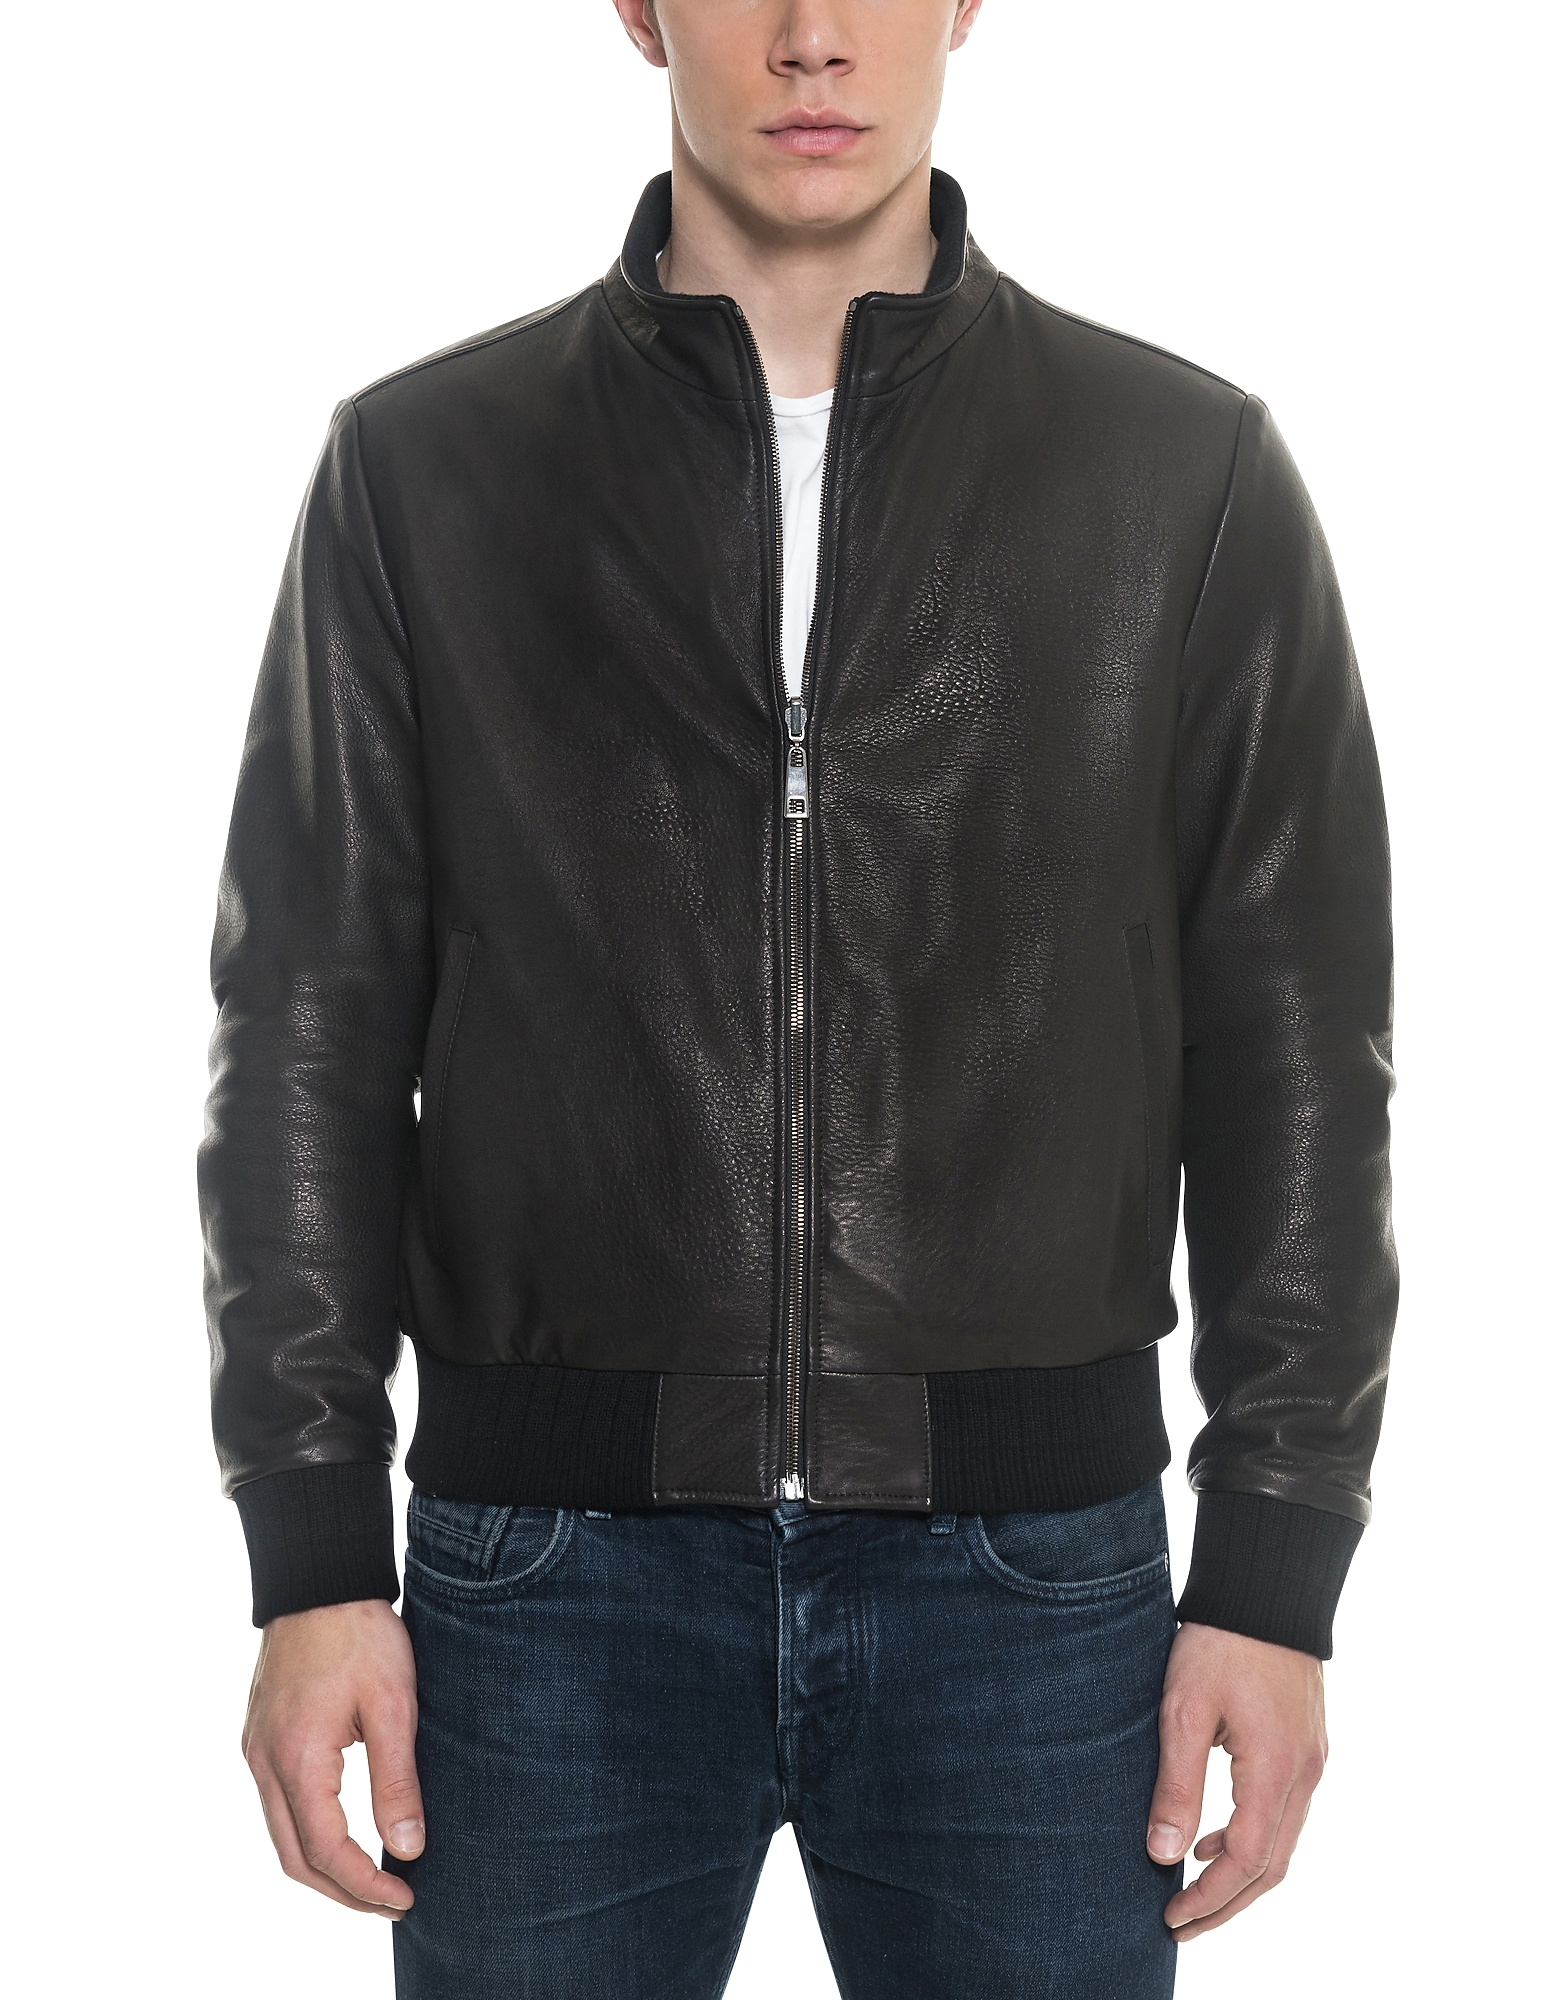 Forzieri Leather Jackets, Black Leather and Nylon Men's Reversible Jacket